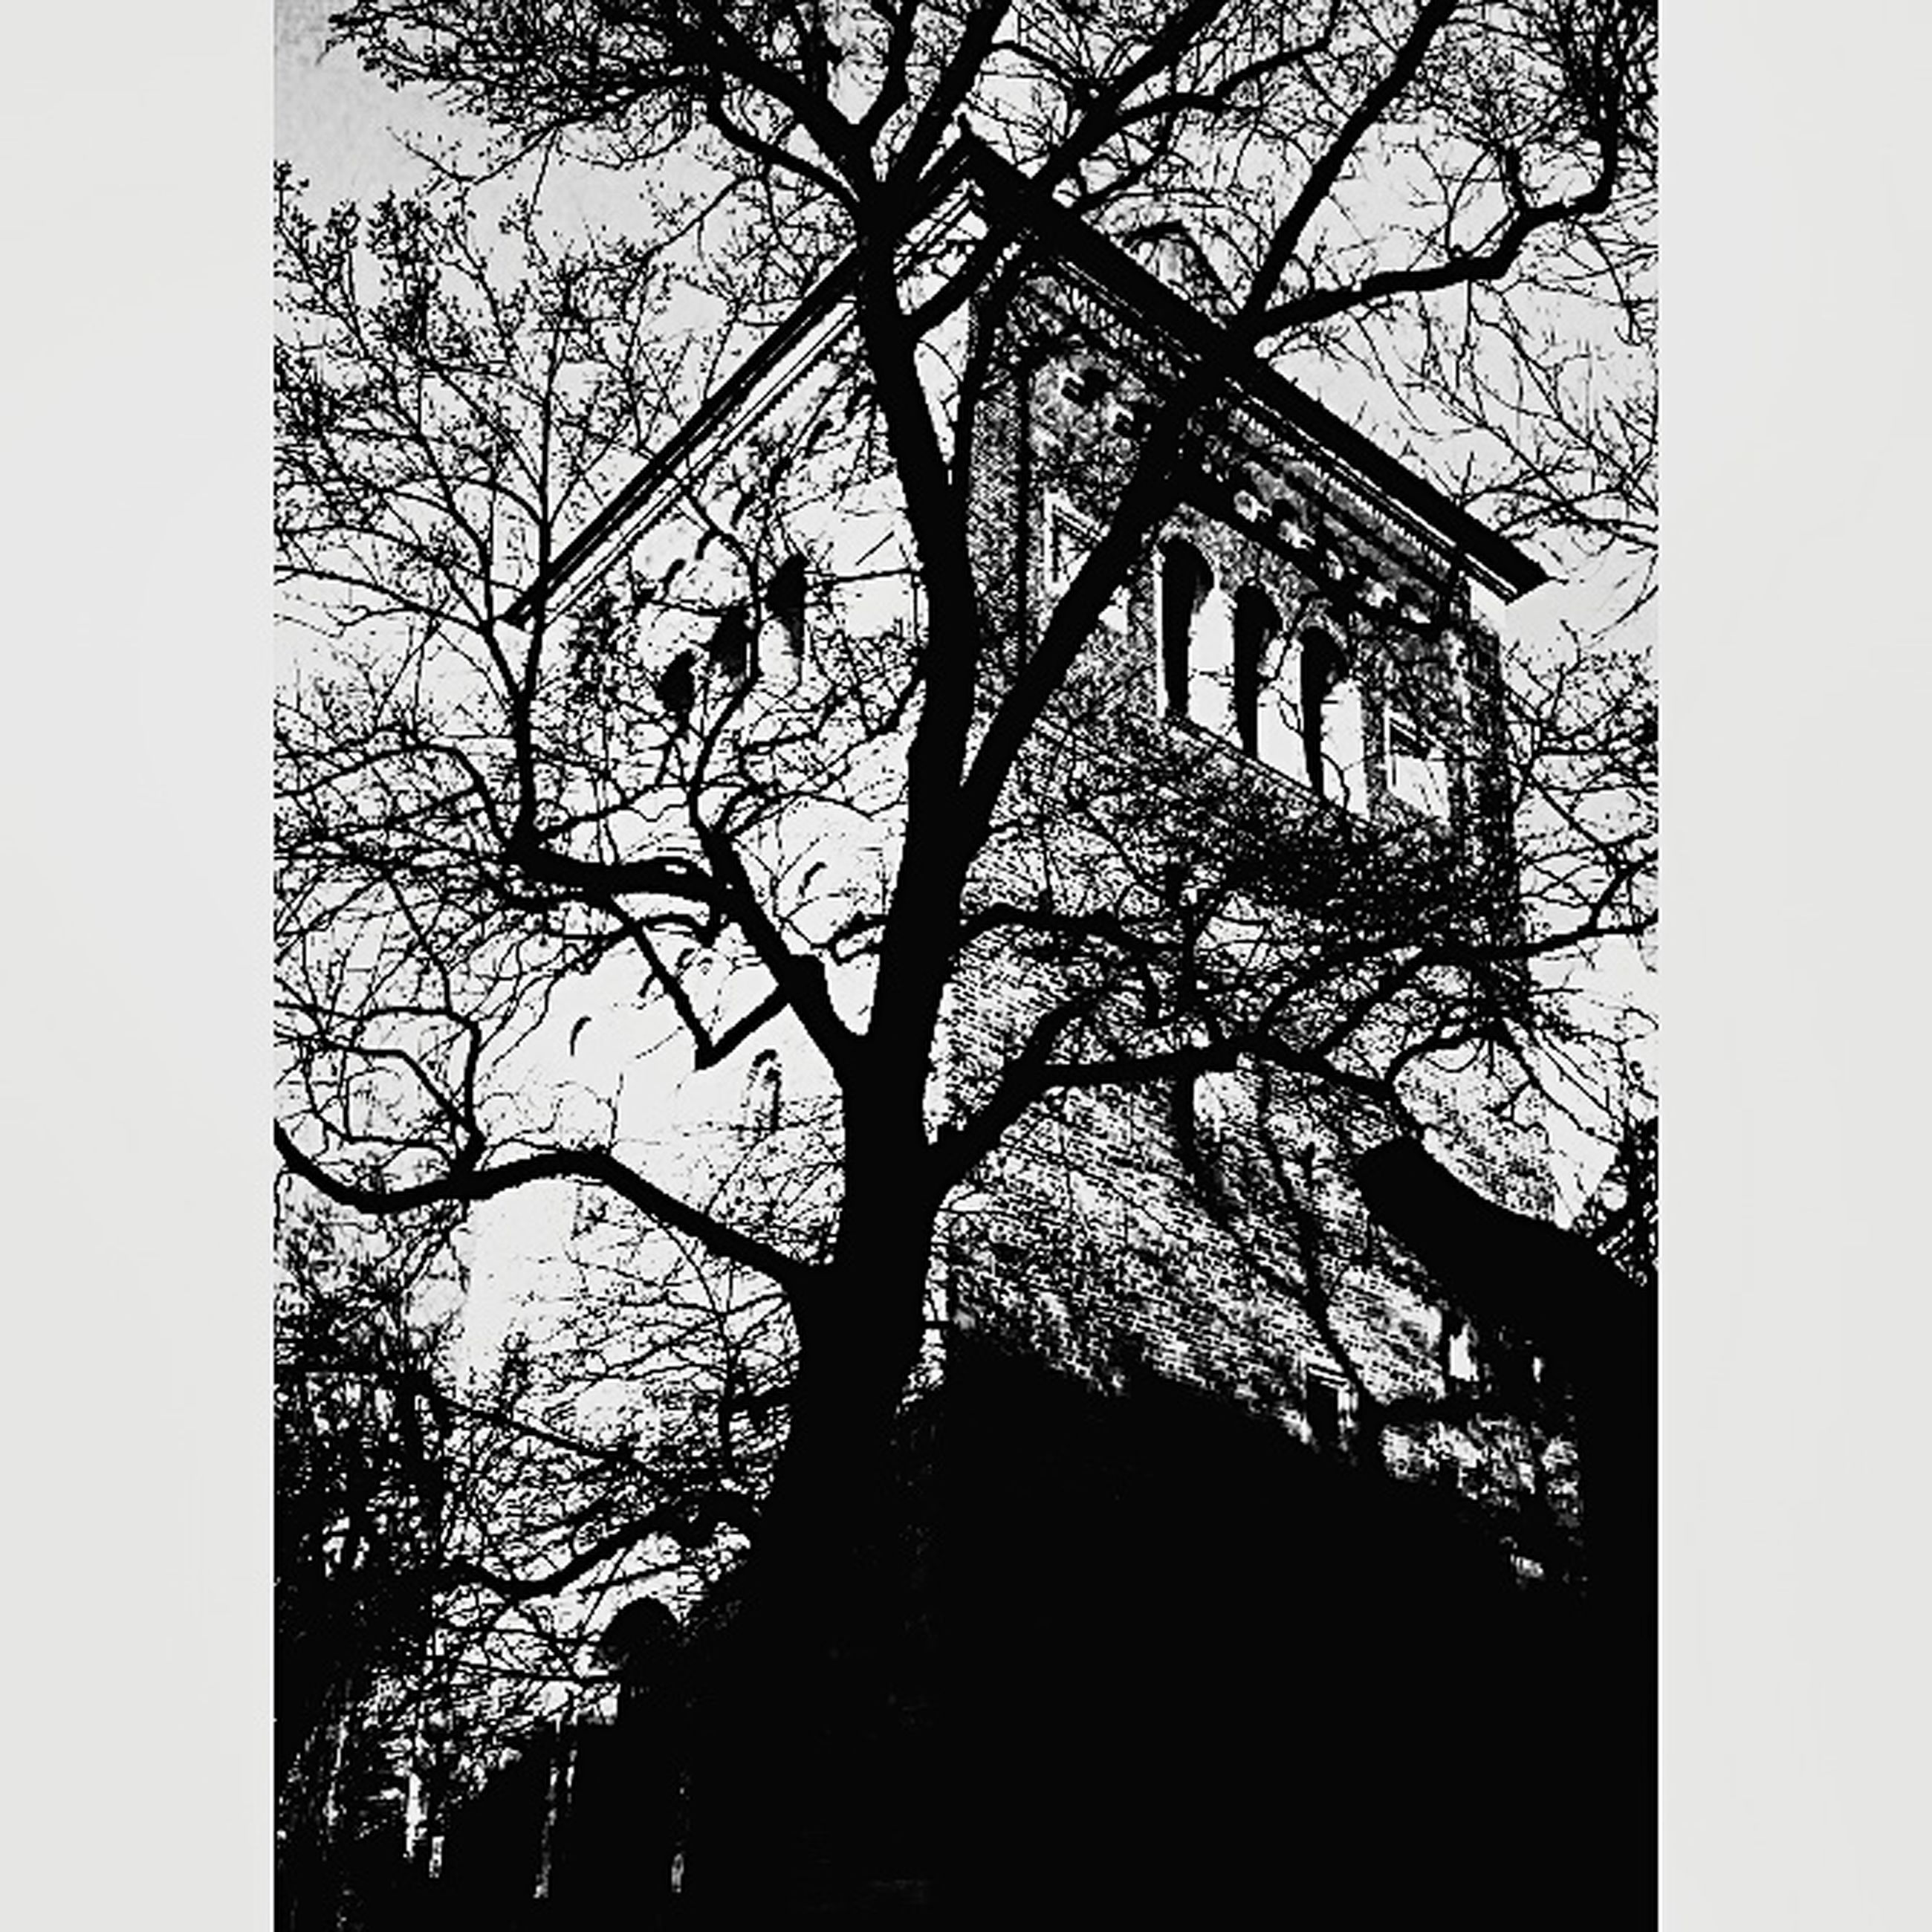 tree, low angle view, no people, branch, day, nature, outdoors, sky